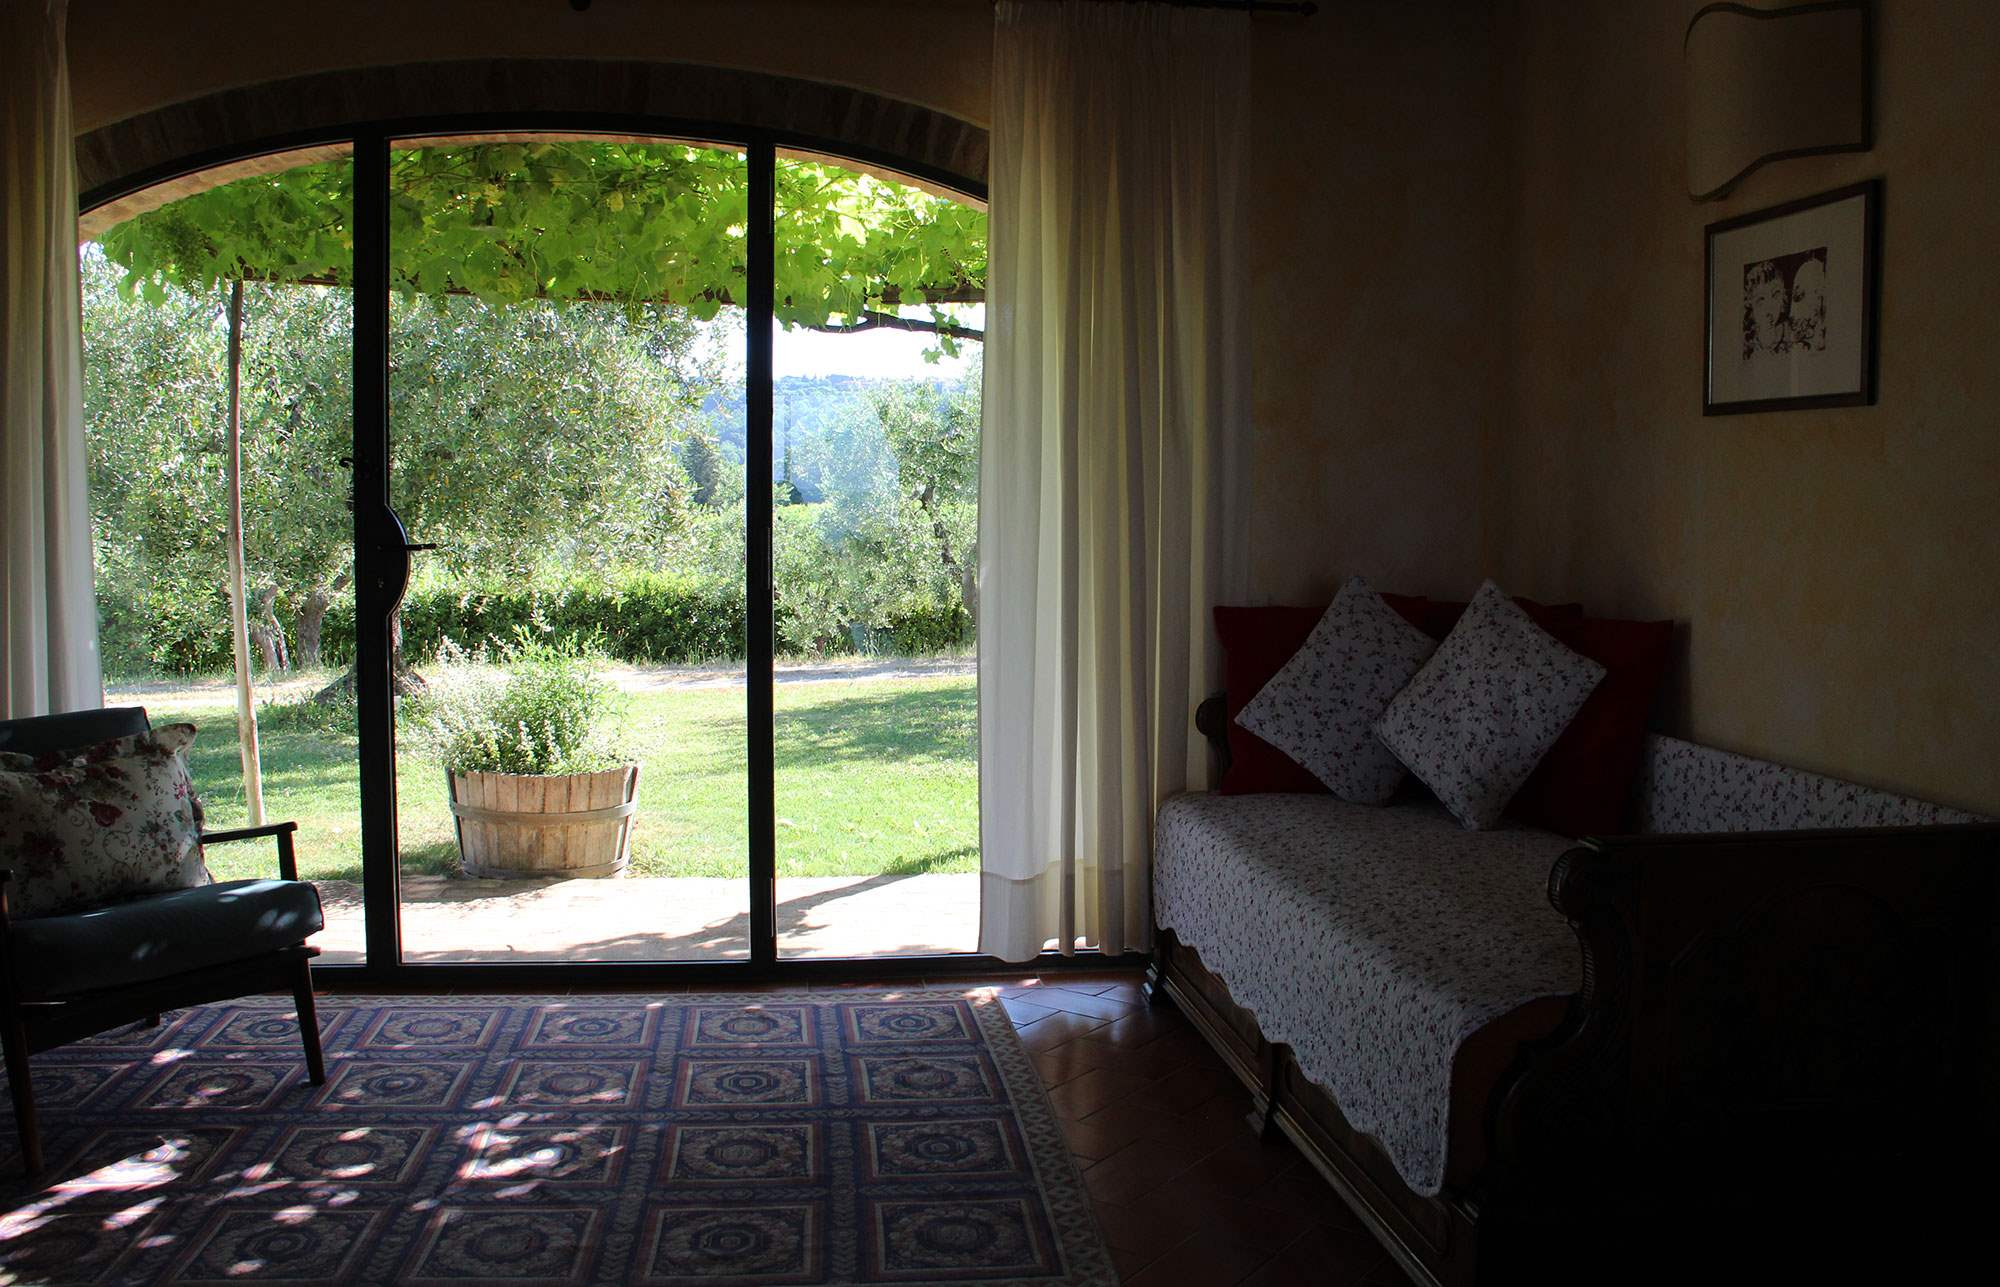 Villa Capanna, 3 bedroom villa in Chianti & Countryside, Tuscany Photo #7